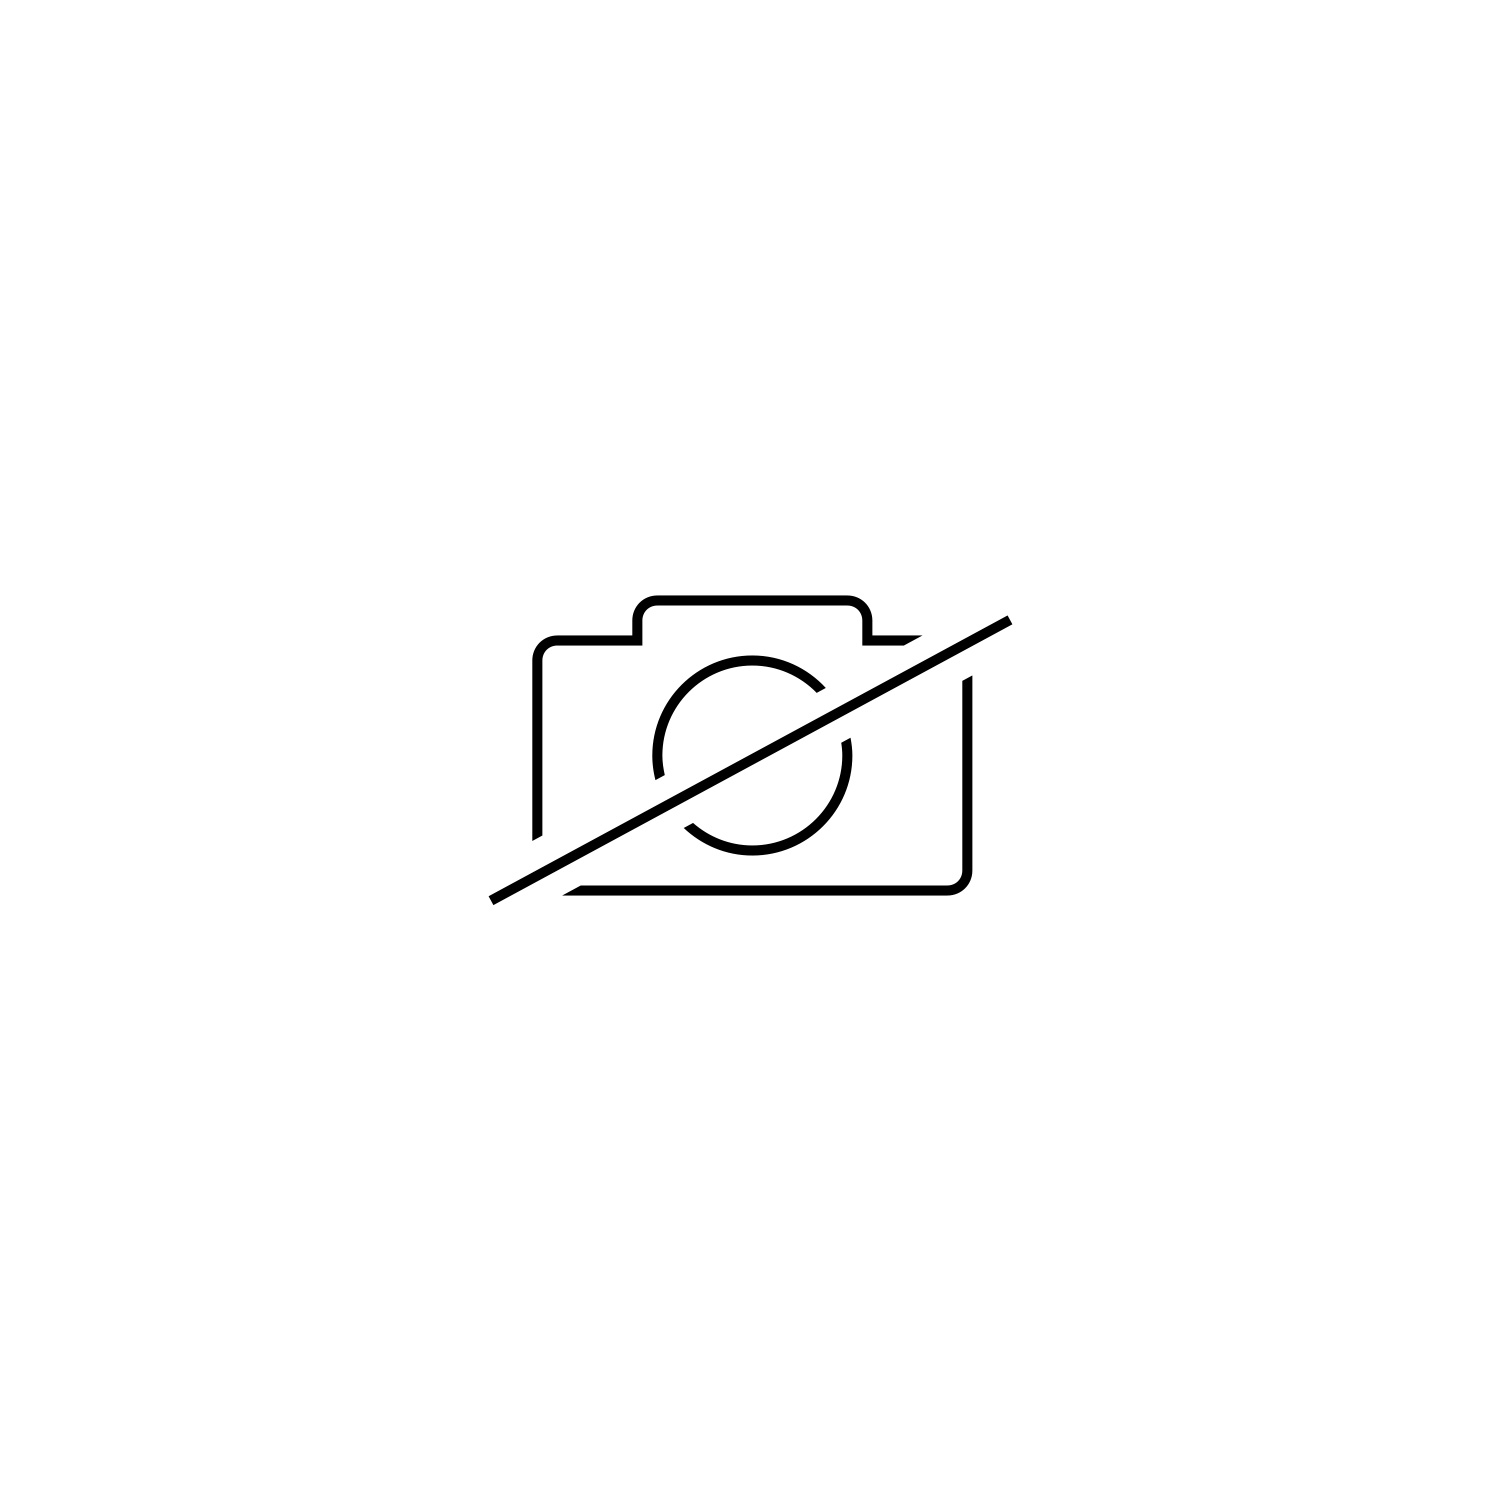 Audi Poloshirt, Mens, Dark grey, L